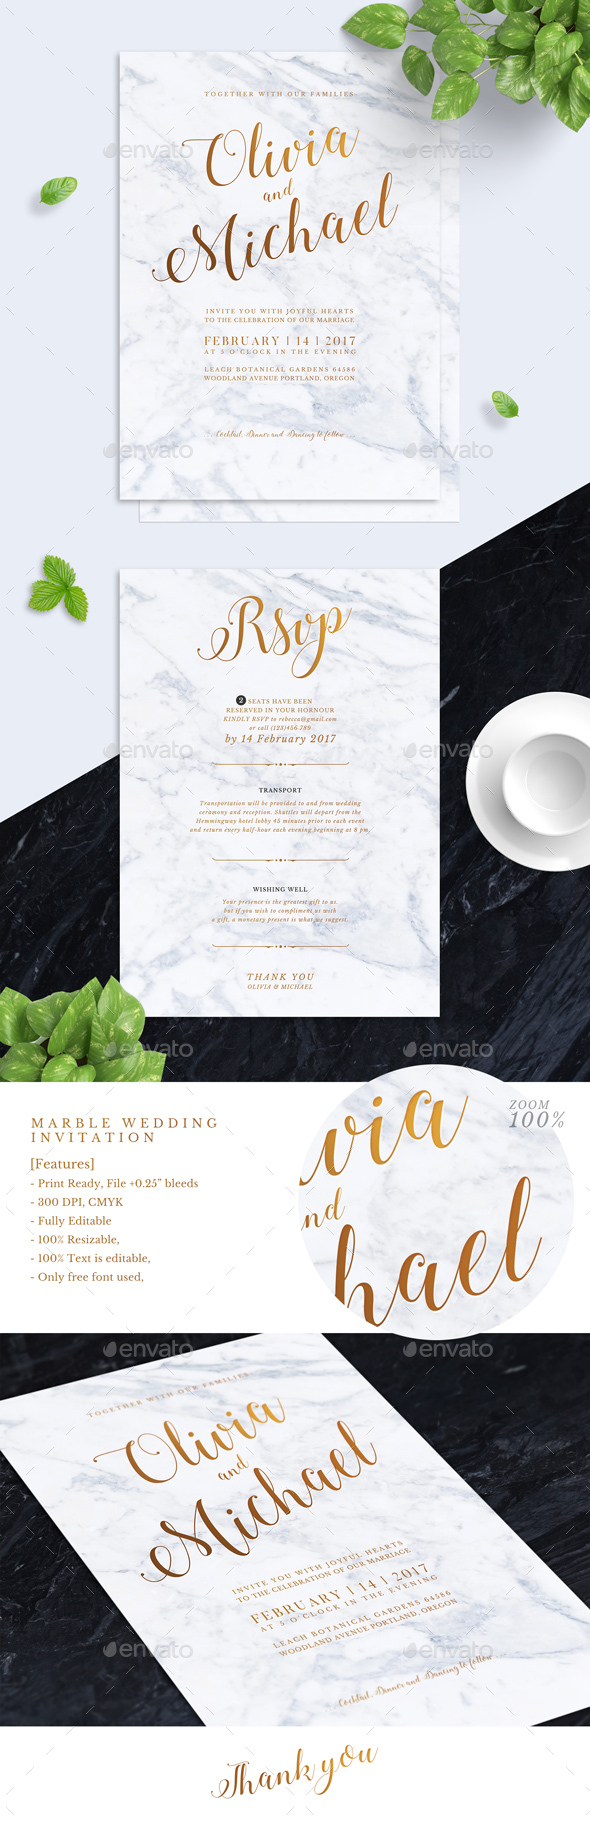 Marbel Wedding Invitation - Weddings Cards & Invites